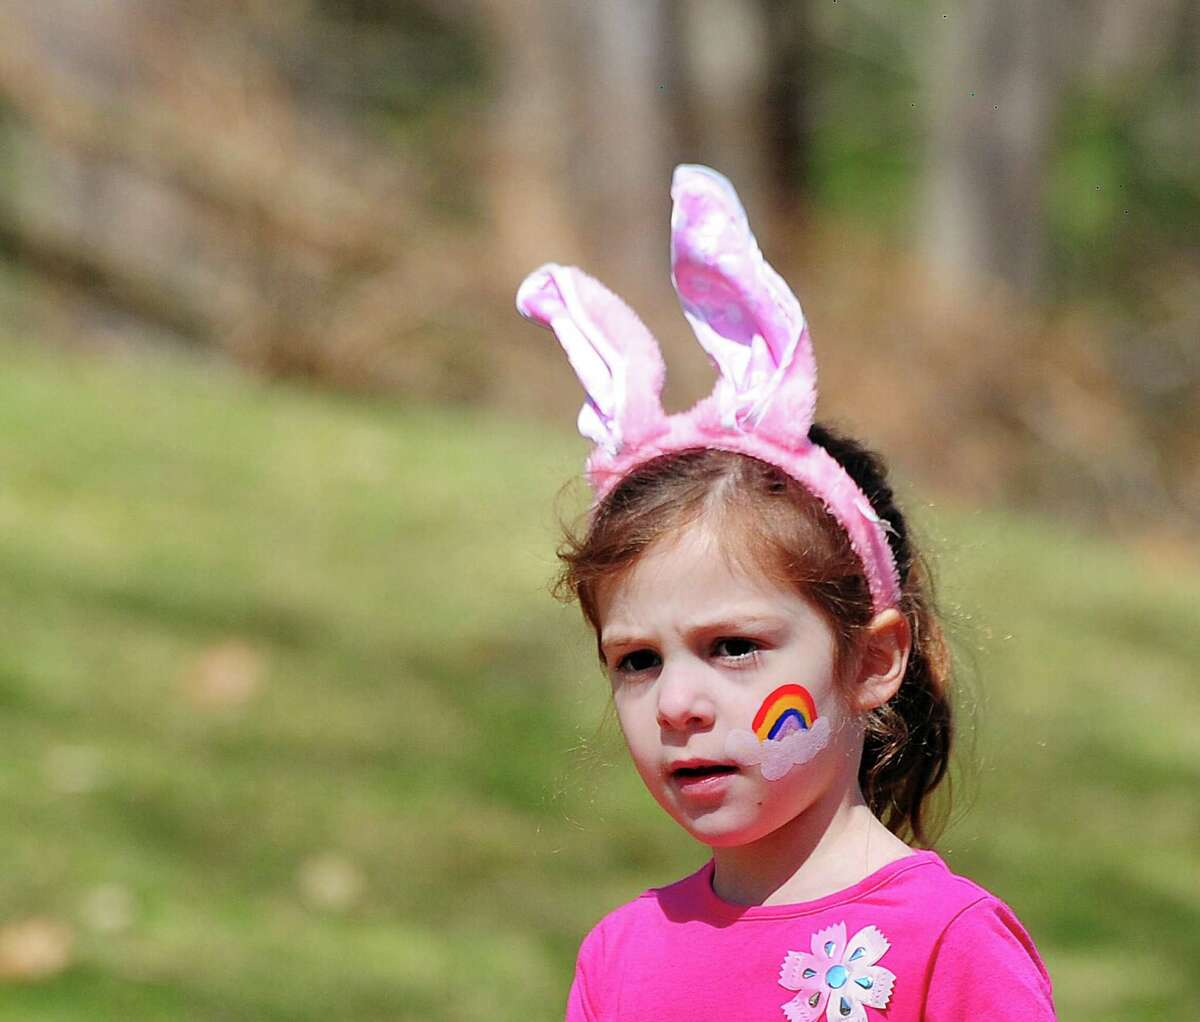 """Harper Hamm, 5, of New York City, wore bunny ears to the annual Easter Egg Hunt at the St. Francis Episcopal Church in Stamford, Conn., Saturday morning, March 31, 2018. Church parishioner Tyler Stevens who was one of the organizers of the event and who wore easter bunny ears to """"get in the spirit of the event,"""" also said that thousnads of eggs with treats were placed around the church for the many kids particiapting. Stevens also said """"We started the egg hunt a little early this year. The kids were doing face painting but were getting ansty for the egg hunt."""" St. Francis Episcopal Church Rev. Mark Lingle said about the annual event, the 10th the church has held, """"Just fantastic. Lots of young kids. It was great, from the arts & crafts and especially the egg hunt. Fantastic."""""""